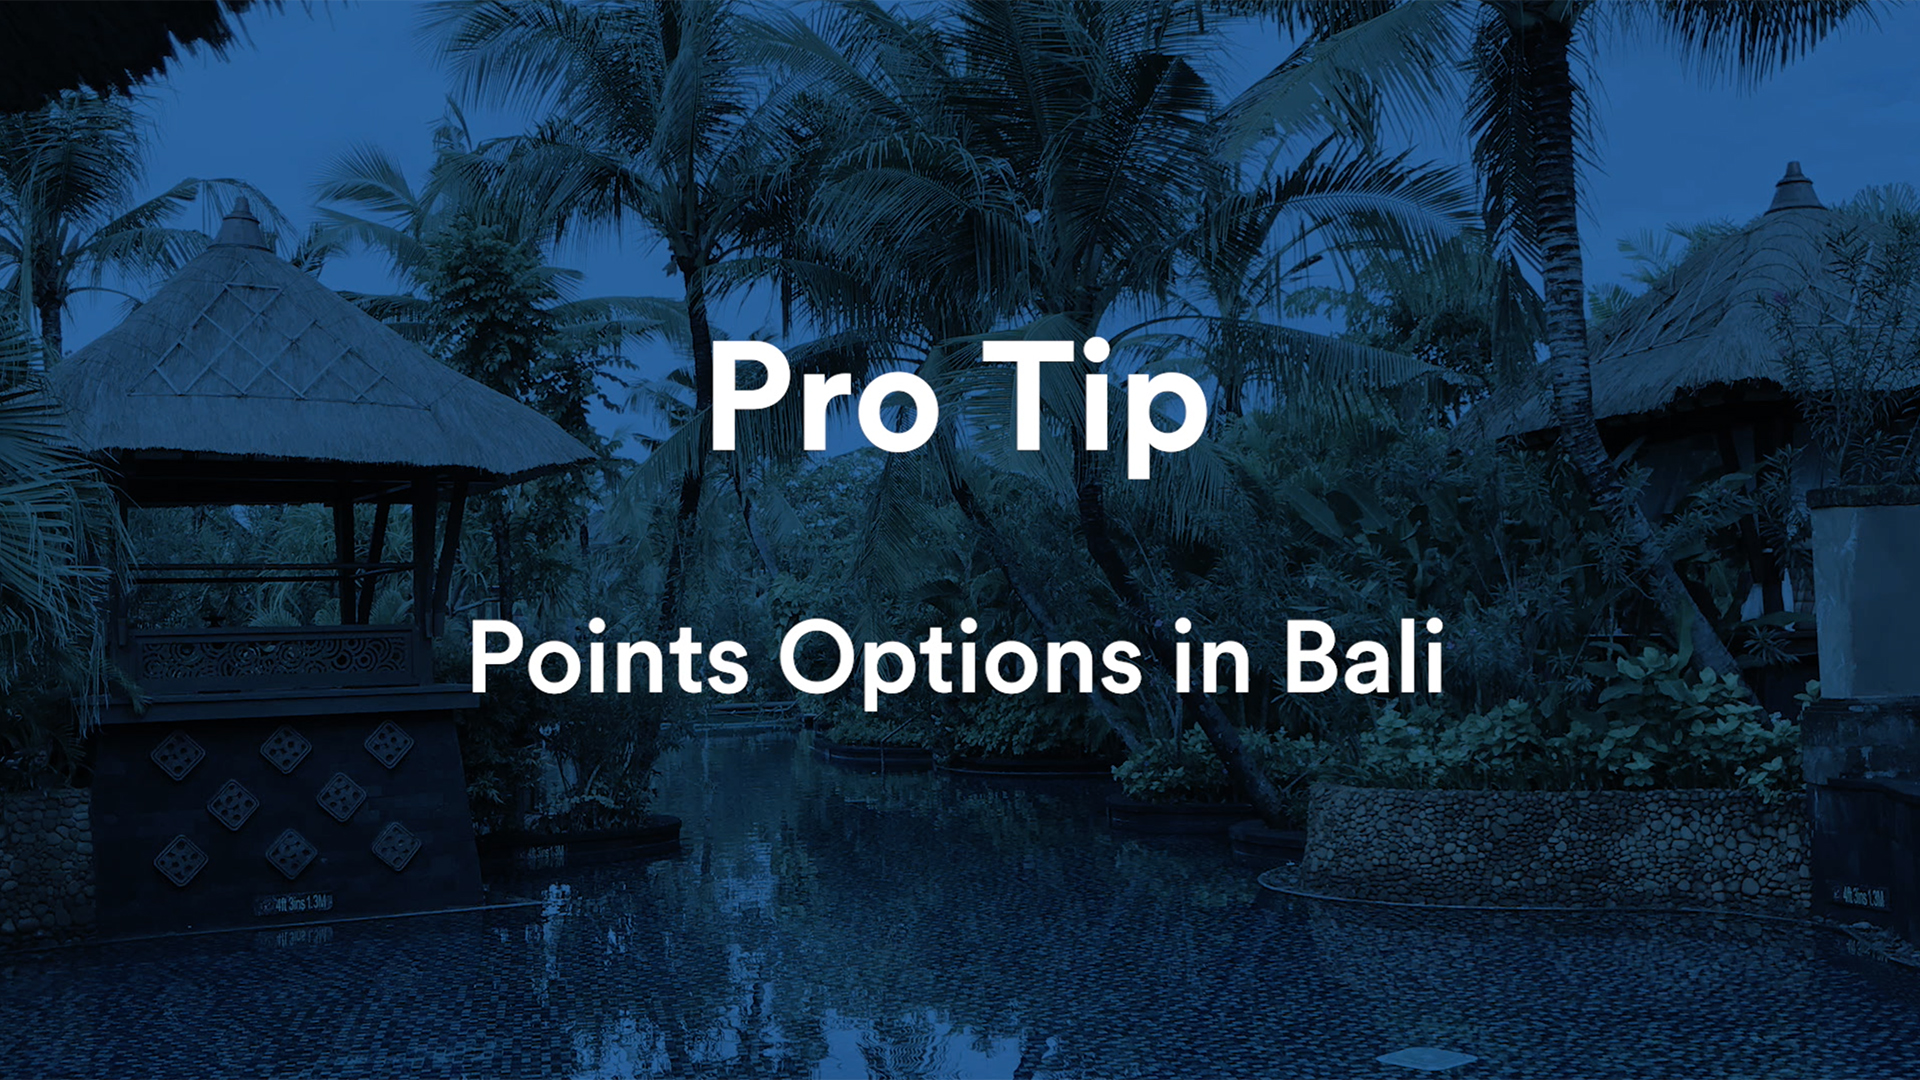 Can I Really Do Five-Star Bali on Points?